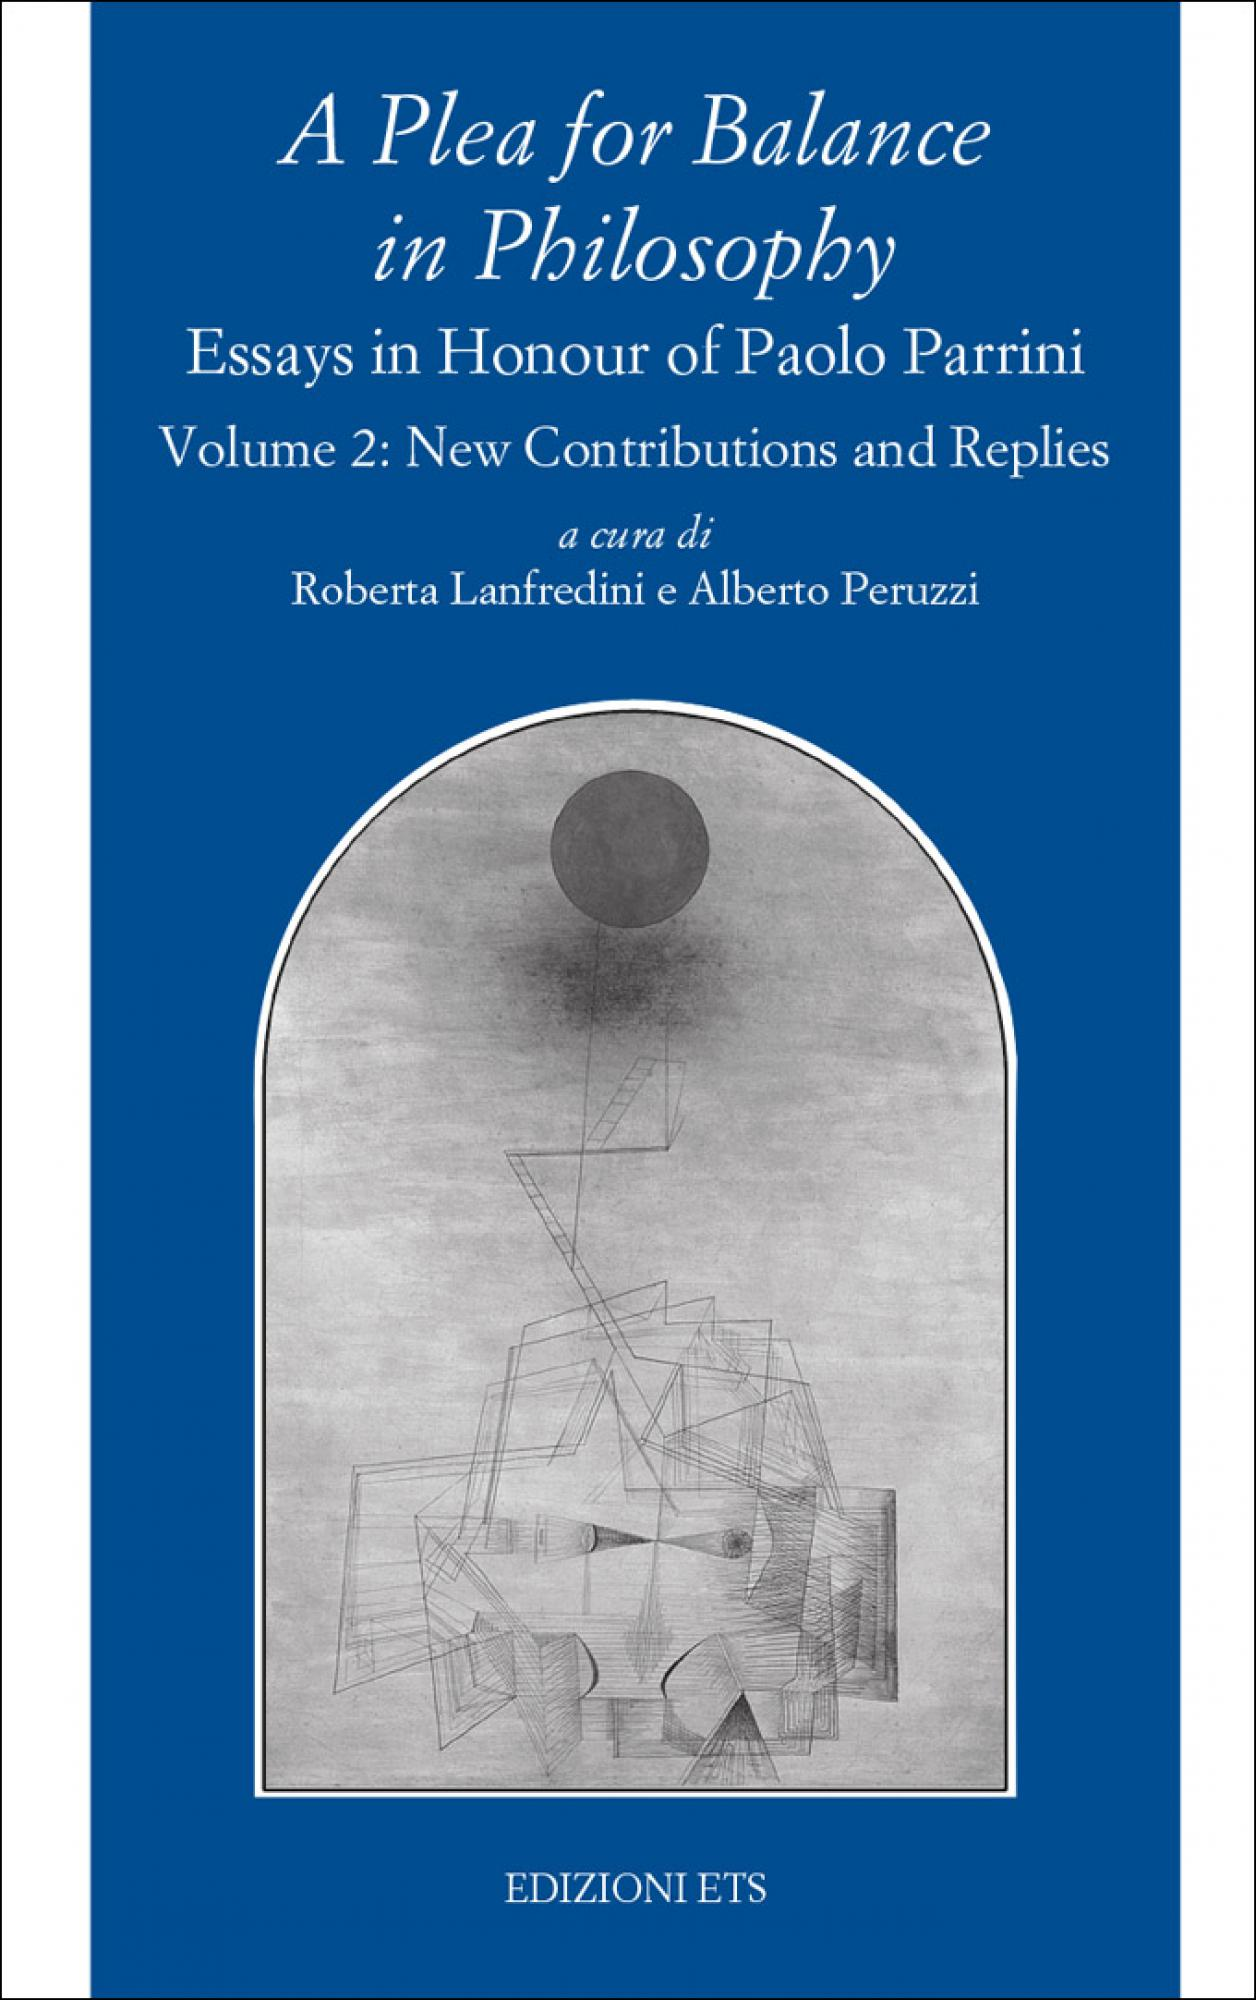 A Plea for Balance in Philosophy.Essays in Honour of Paolo Parrini –Volume 2: New Contributions and Replies